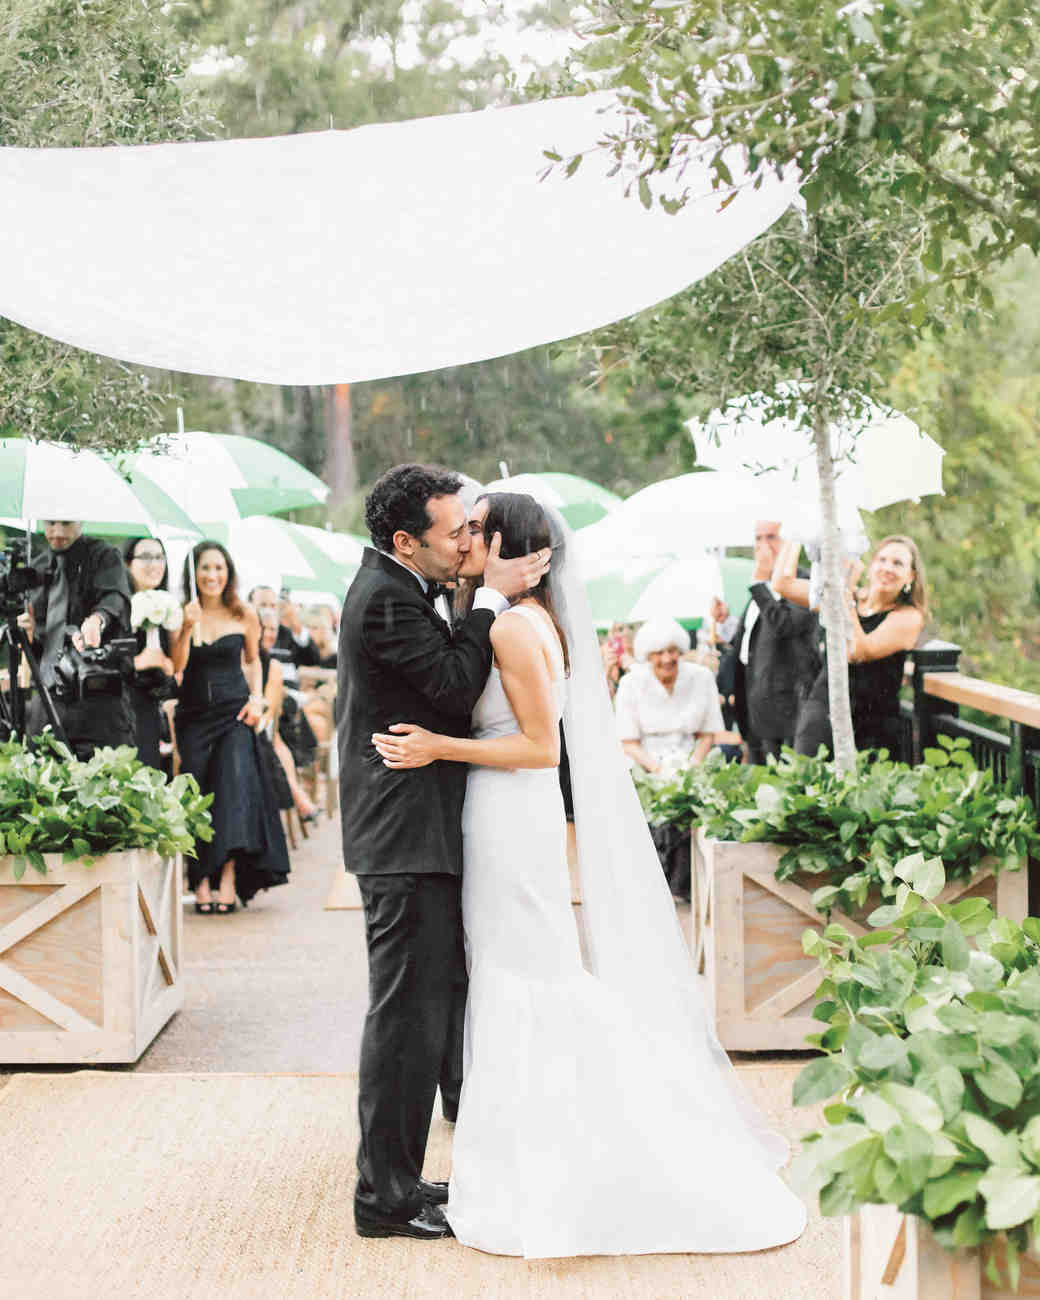 Planning An Outdoor Wedding: Don't Make These Mistakes – Part 1 Planning An Outdoor Wedding: Don't Make These Mistakes – Part 1 new pics